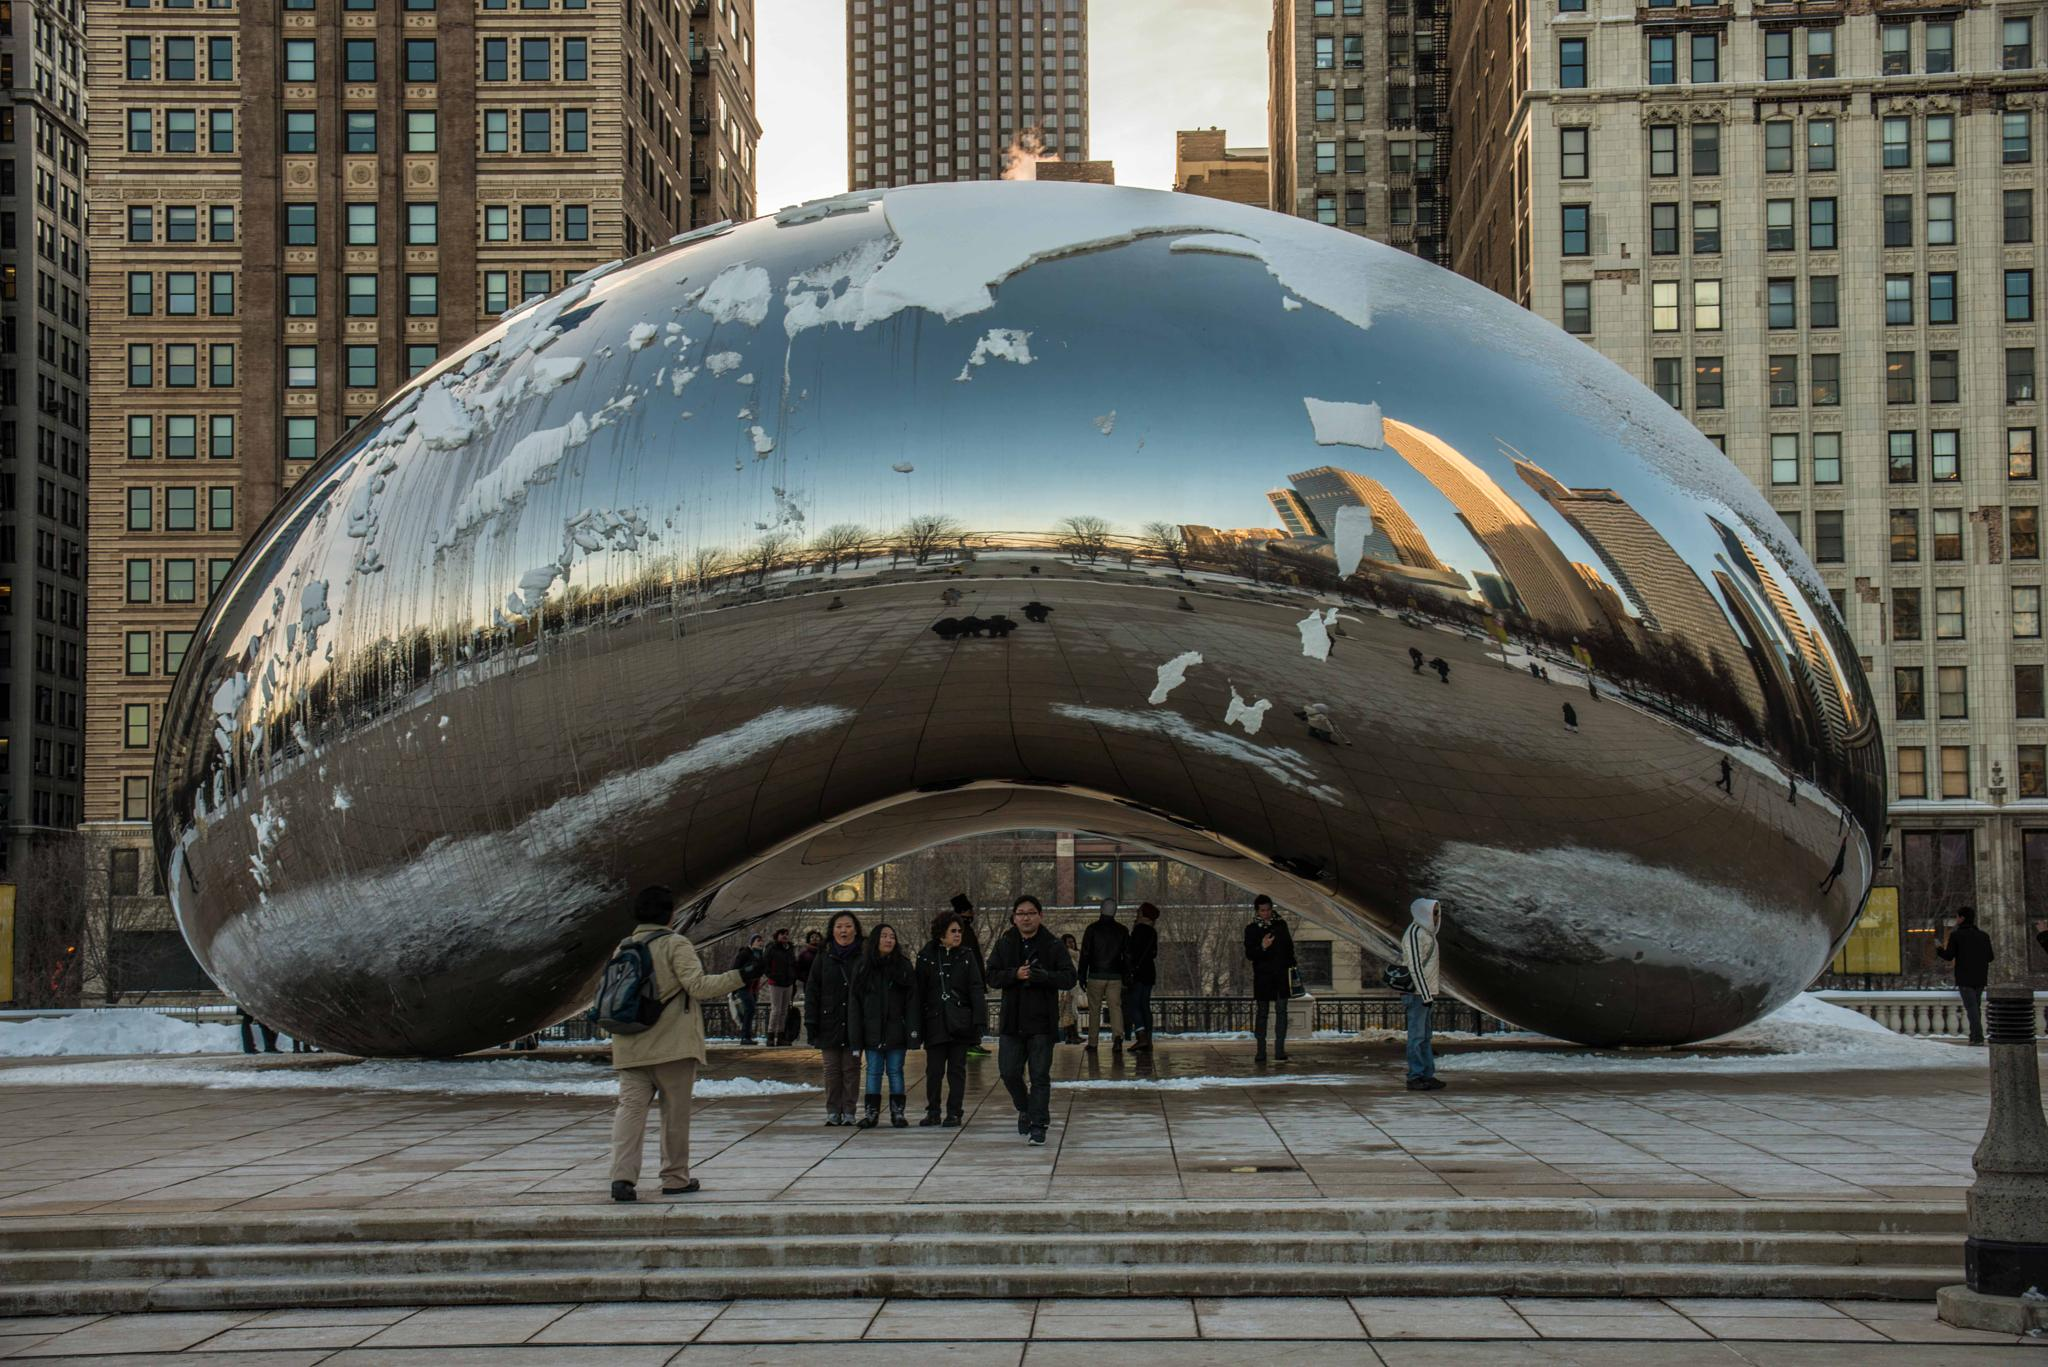 Cloud Gate a.ka. The Bean by ramesh thyagarajan